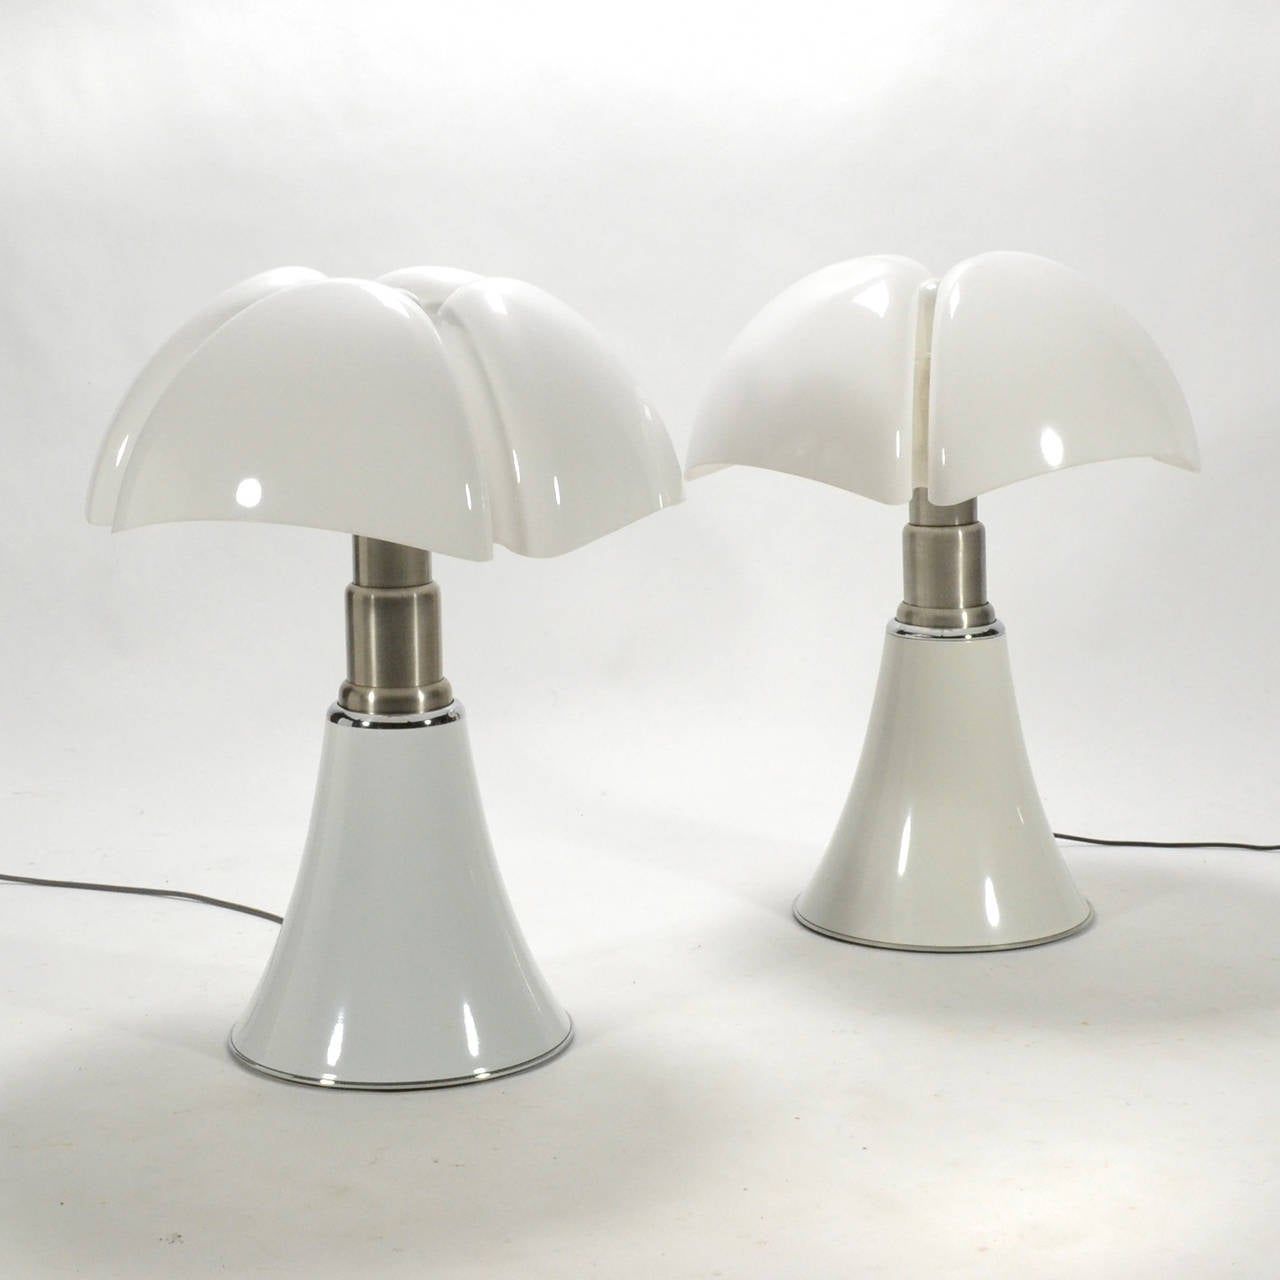 Italian Pair of Gae Aulenti Pipistrello Table Lamps For Sale